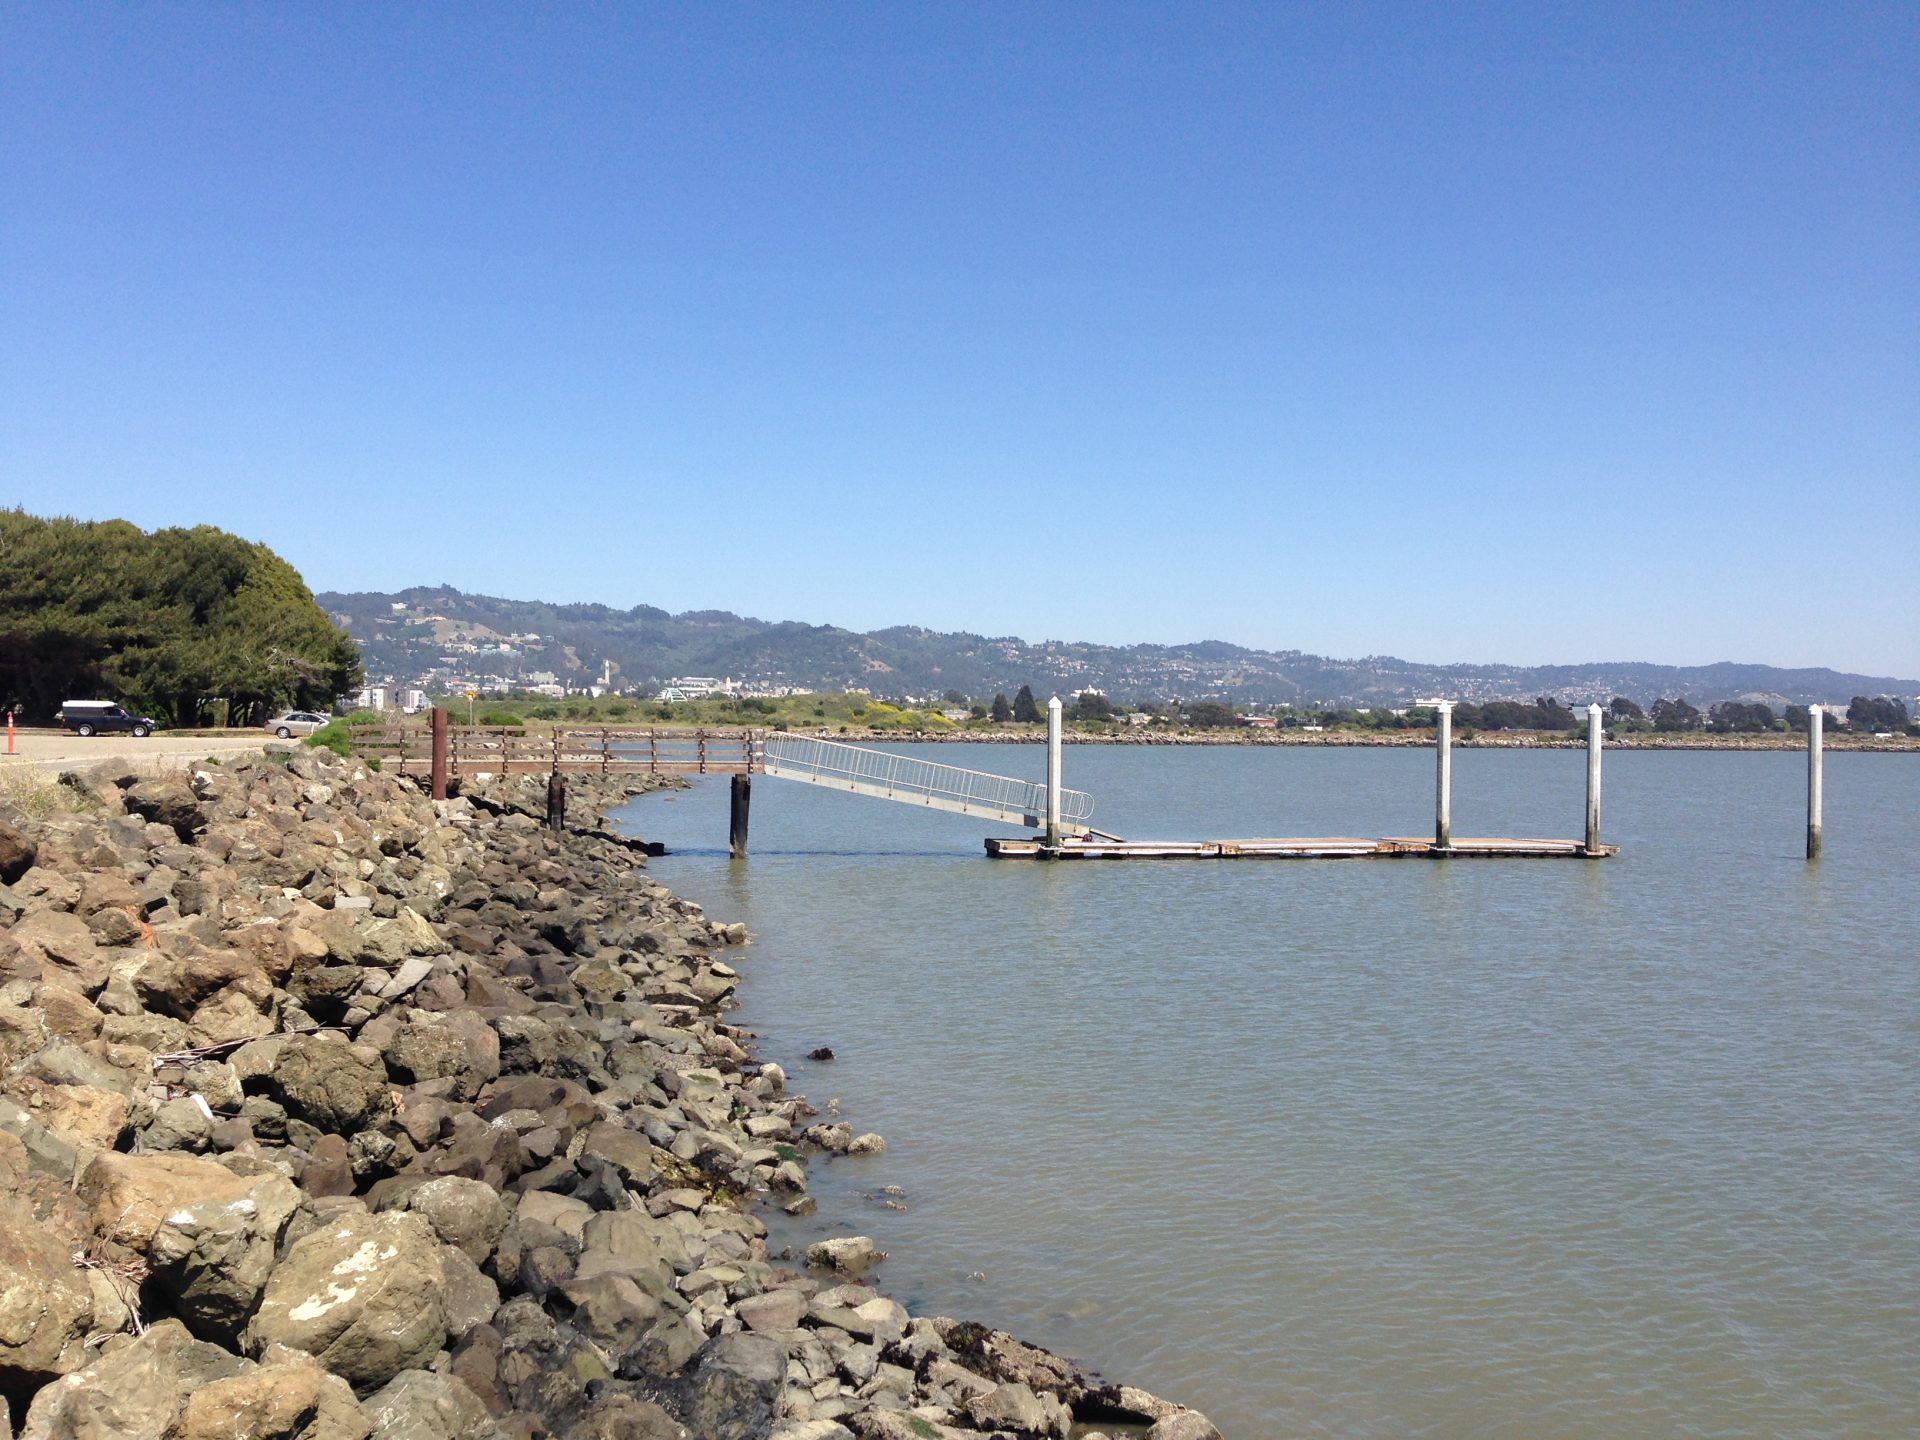 Looking up riprap covered shoreline to wooden pier and ramp down to floating dock